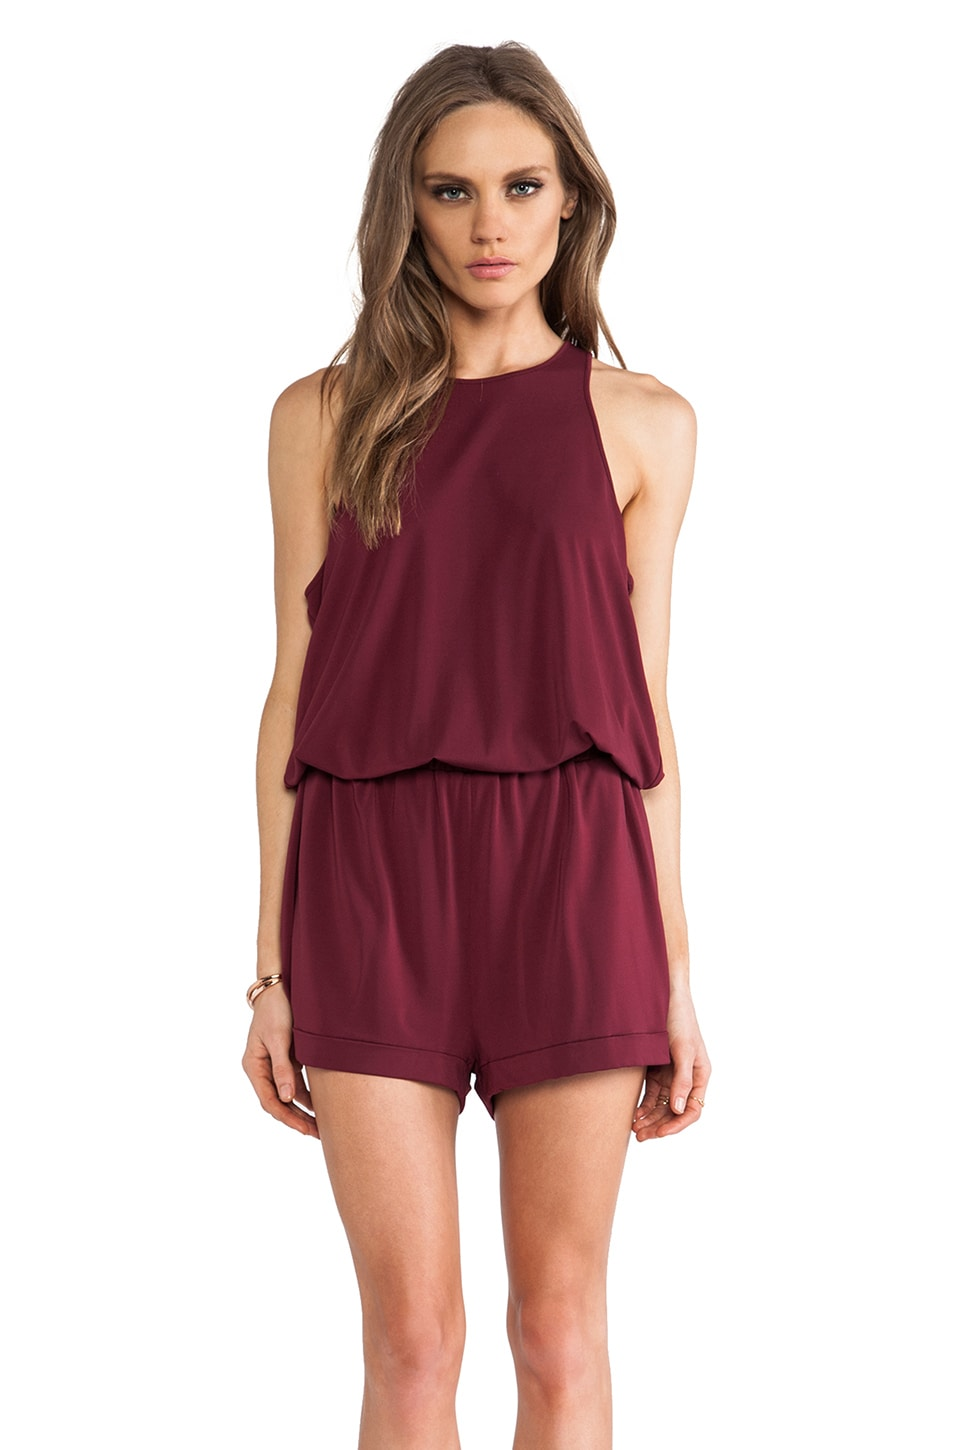 Elizabeth and James Lisa Romper in Garnet